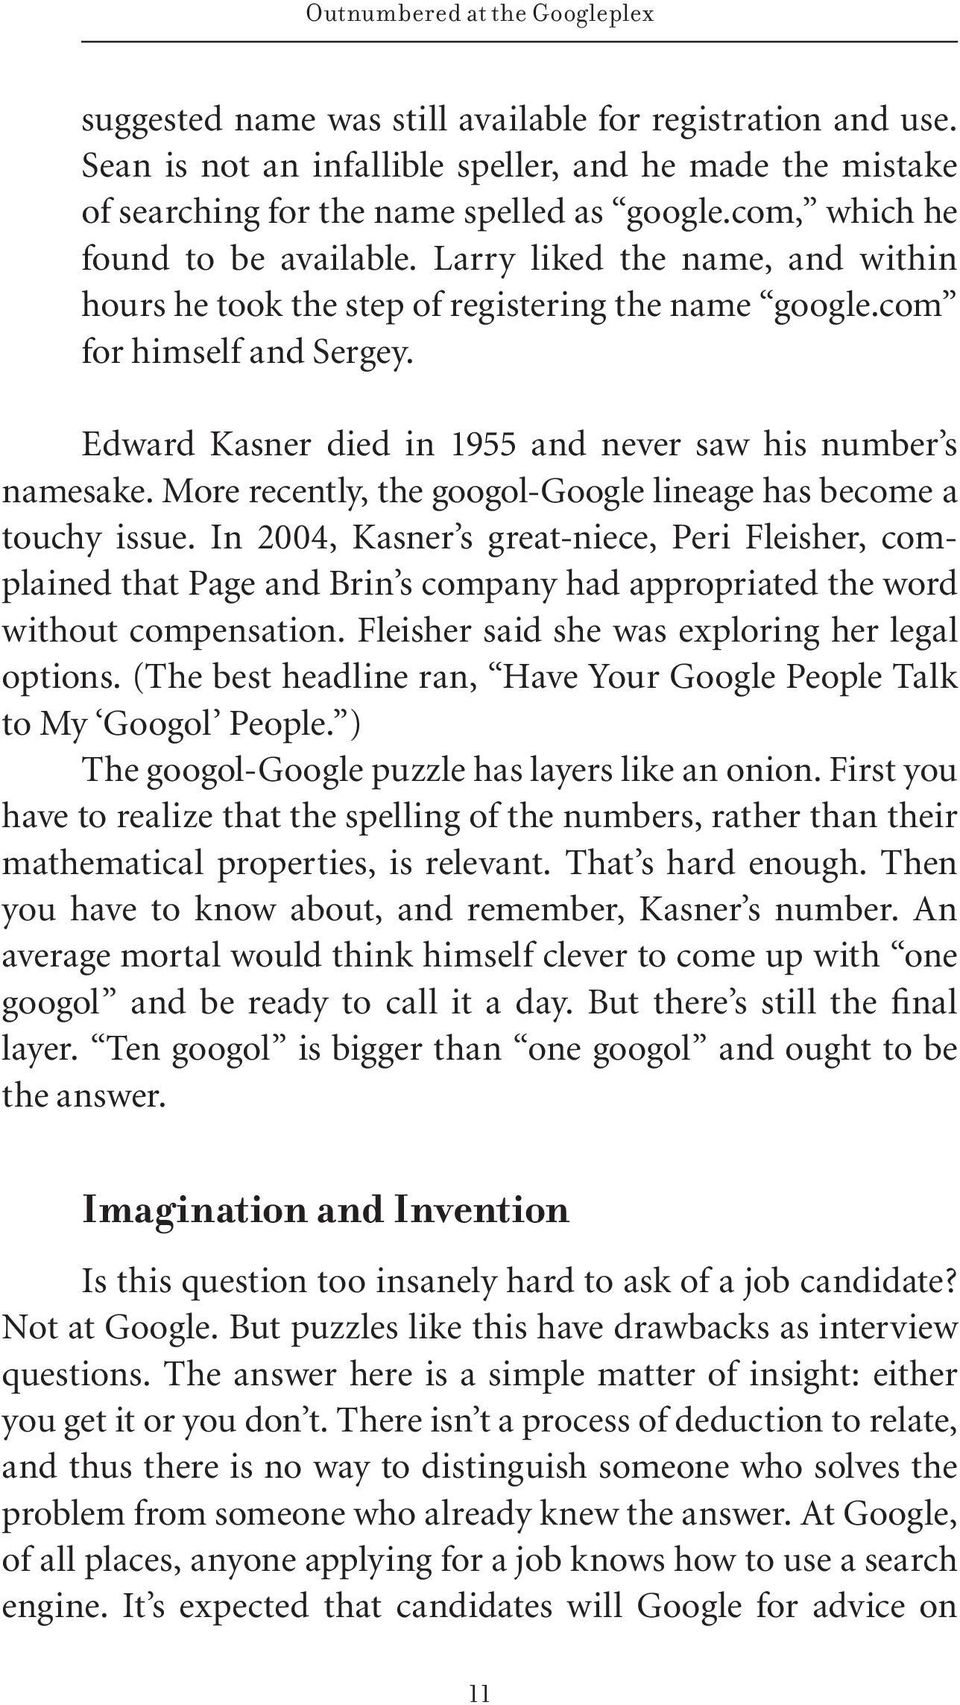 Edward Kasner died in 1955 and never saw his number s namesake. More recently, the googol-google lineage has become a touchy issue.